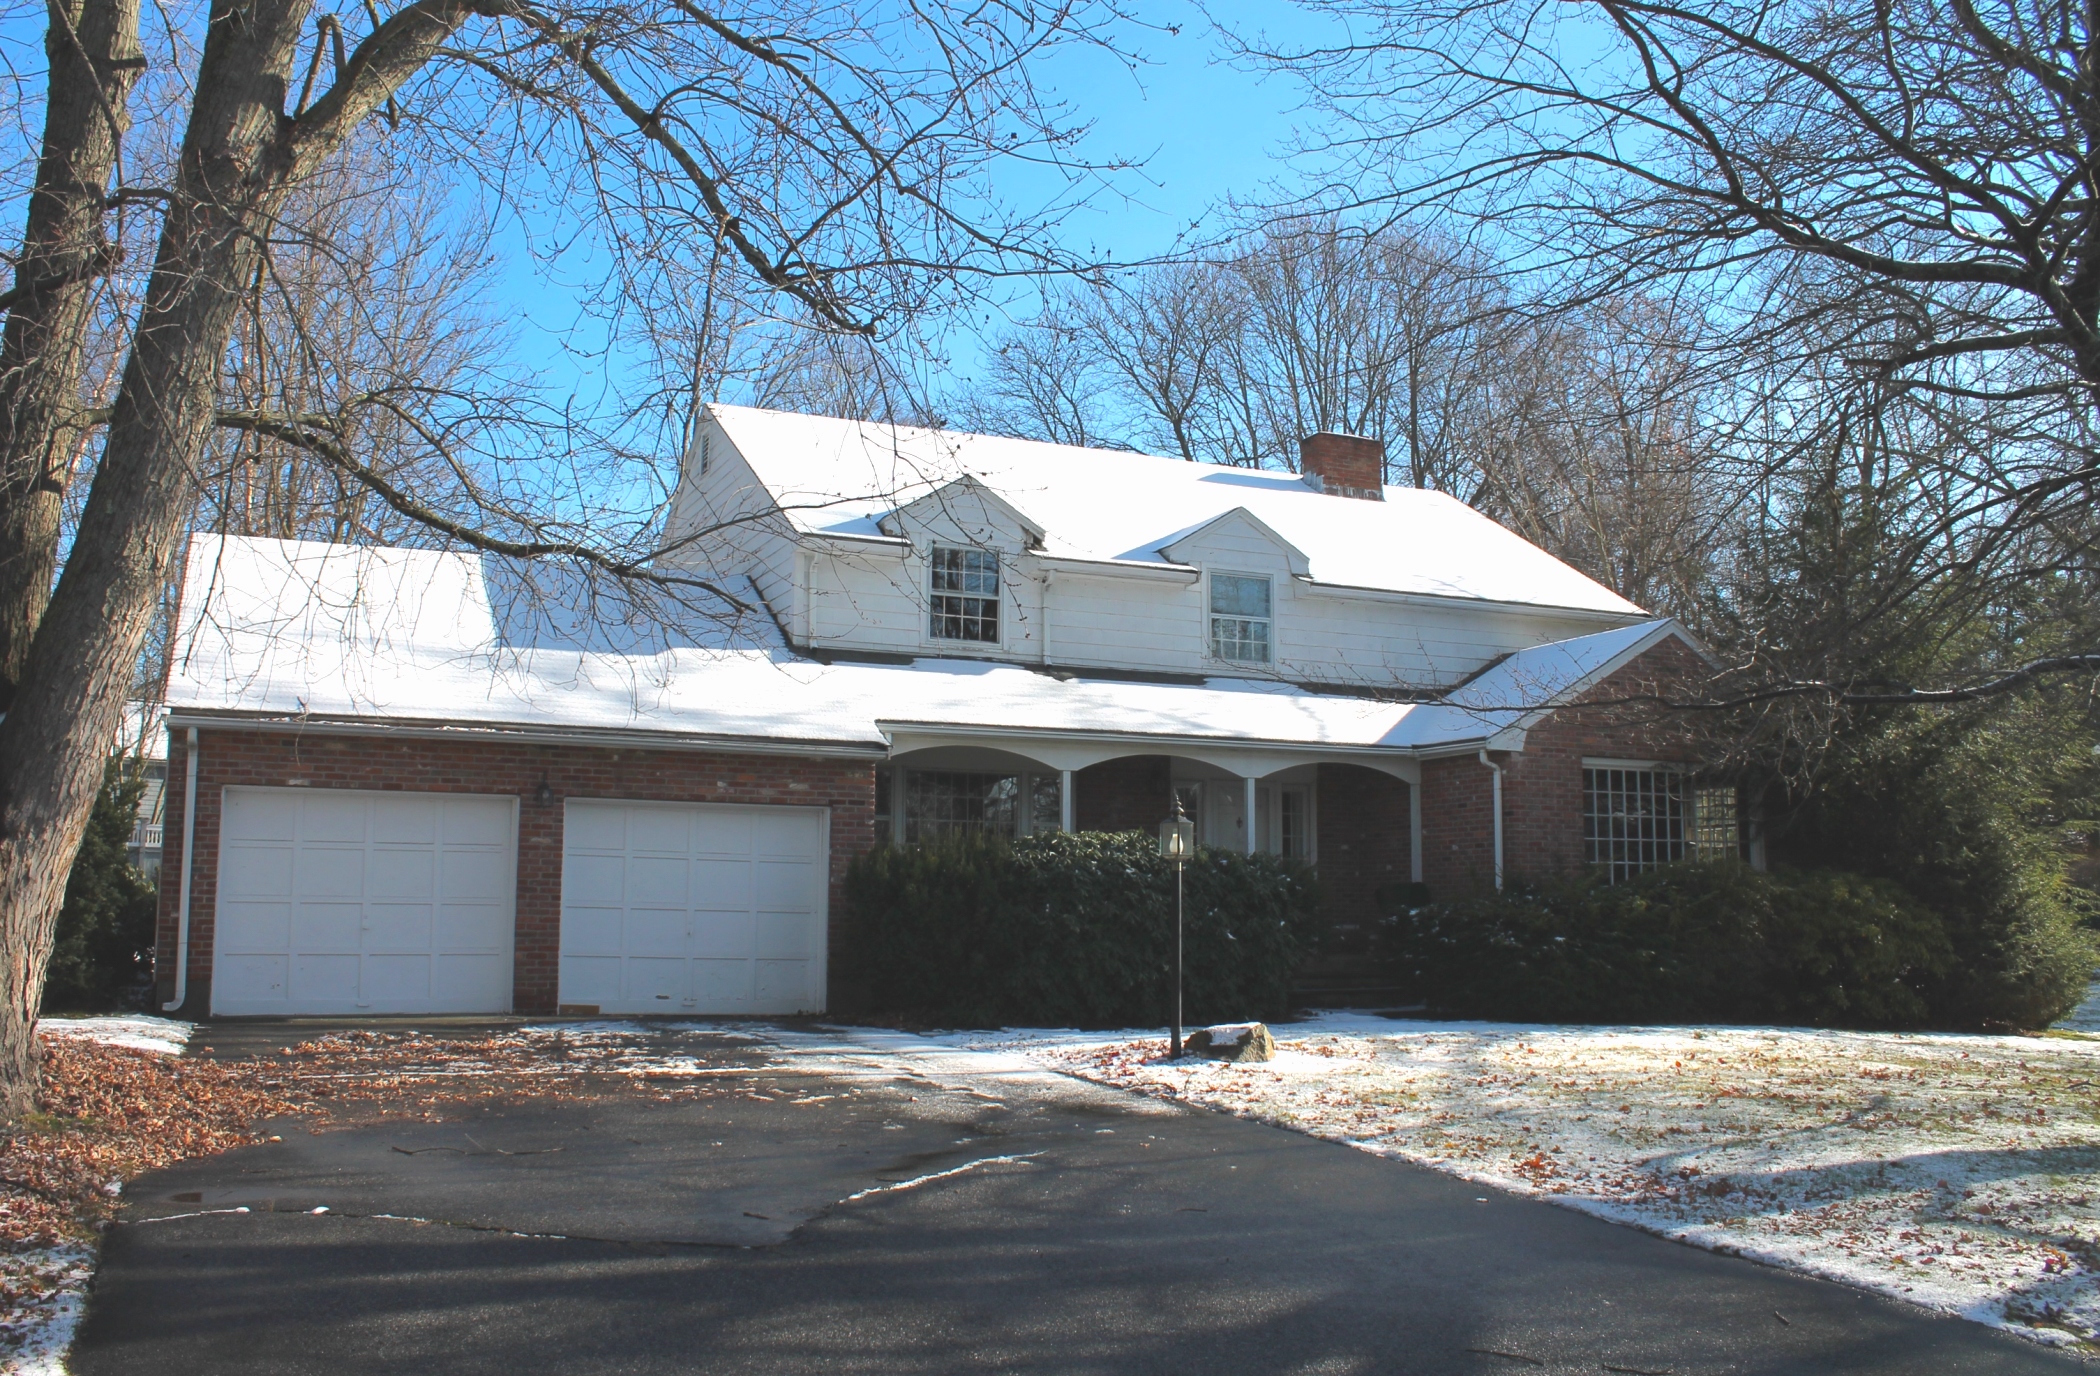 Casa Unifamiliar por un Venta en Excellent Opportunity! 29 Nickerson Road Lexington, Massachusetts, 02421 Estados Unidos